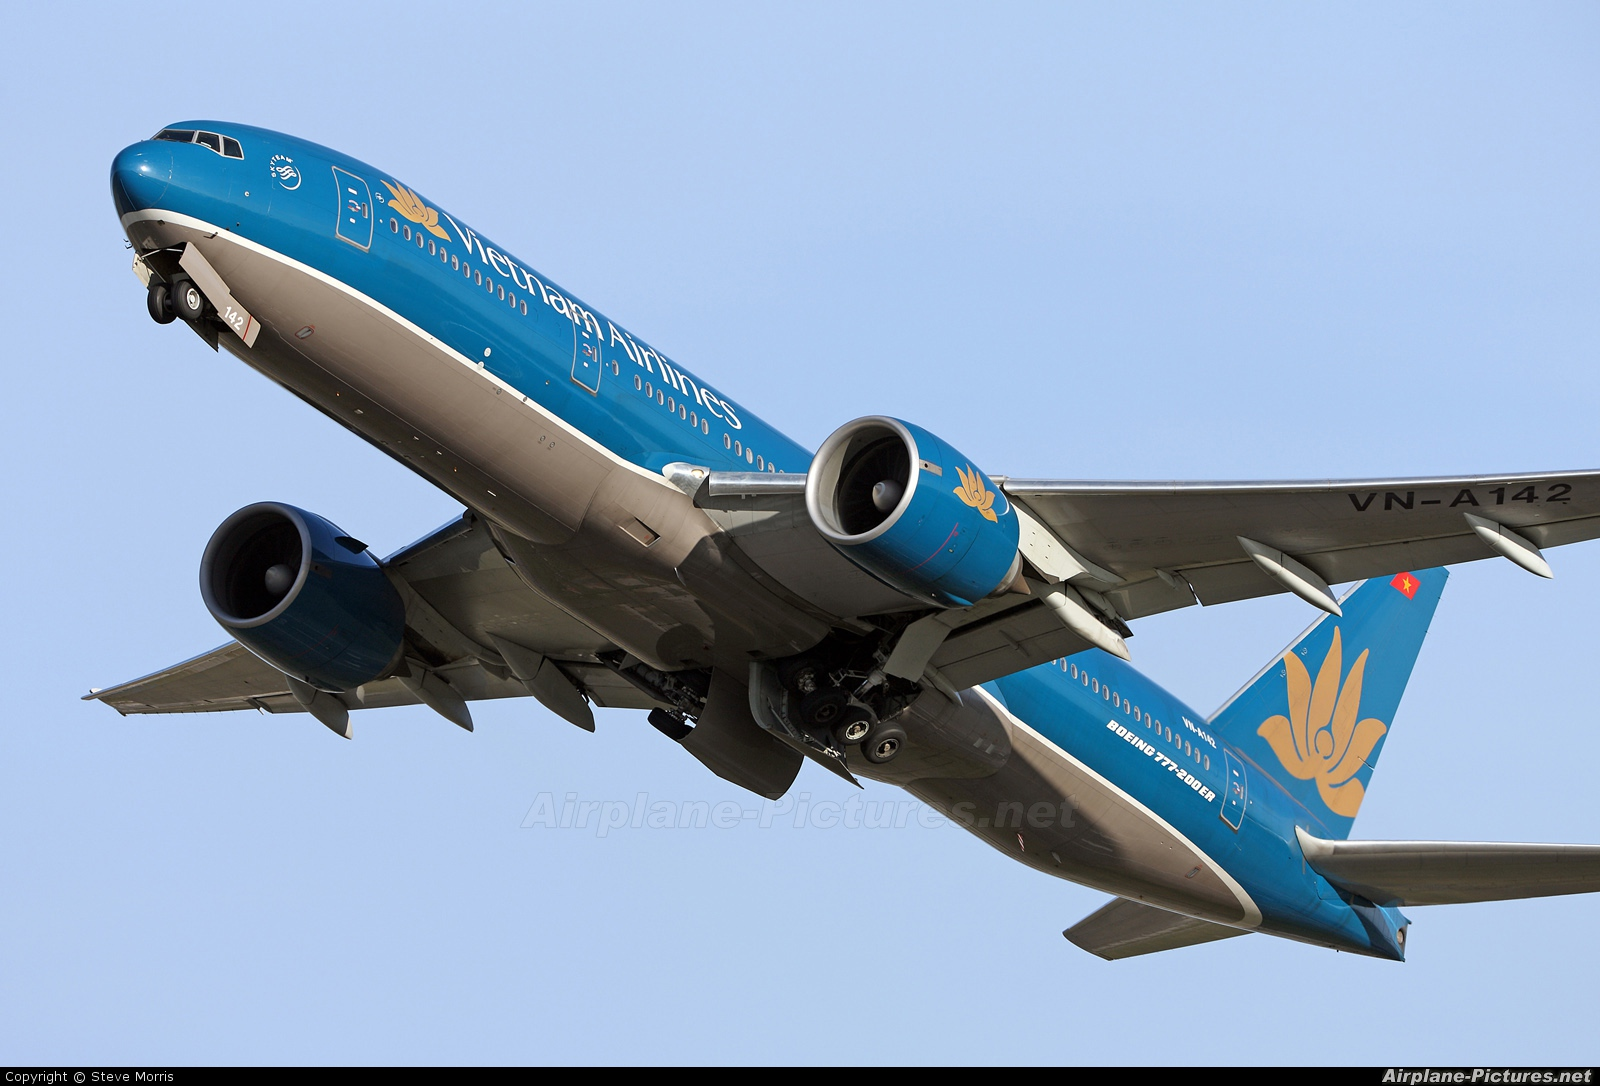 Vietnam Airlines VN-A142 aircraft at London - Gatwick